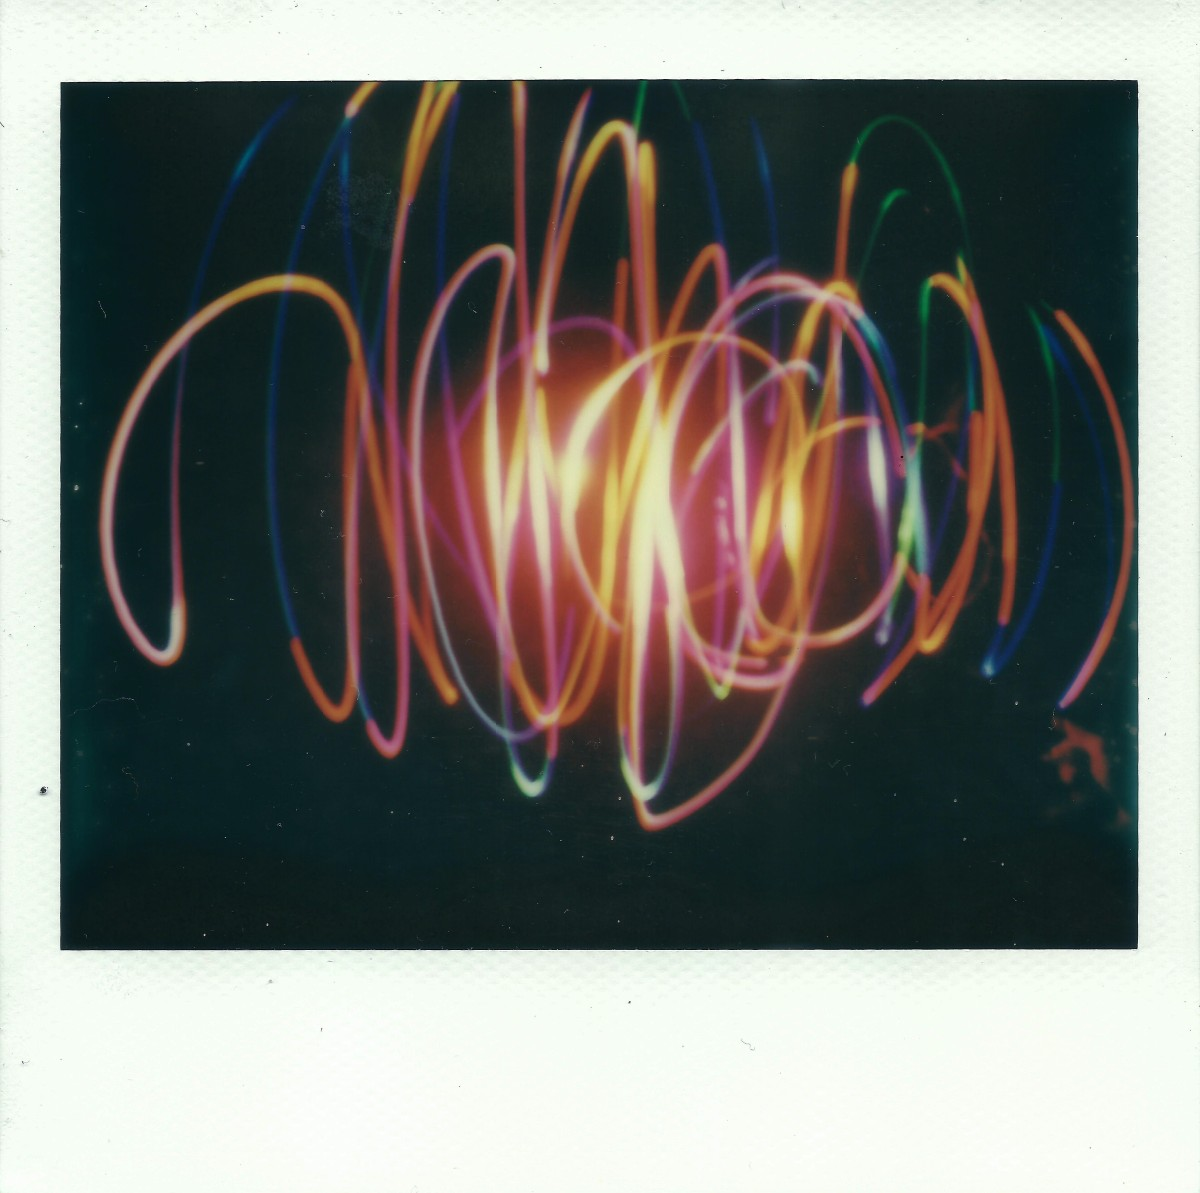 Using our Polaroid Spectra ImagePro